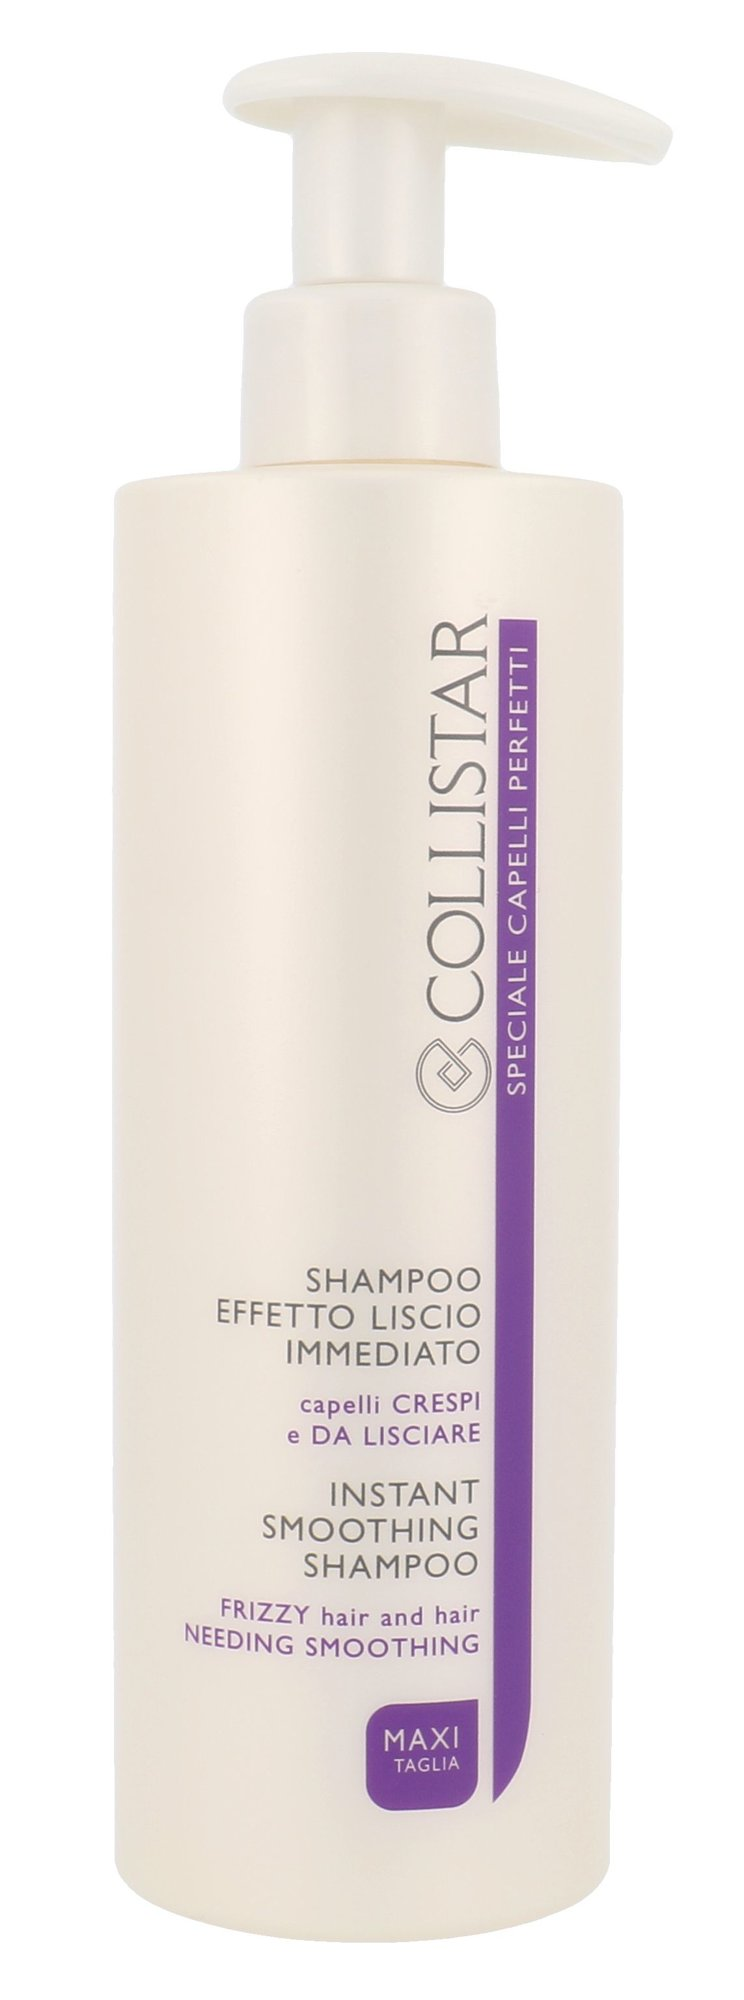 Collistar Instant Smoothing Cosmetic 400ml